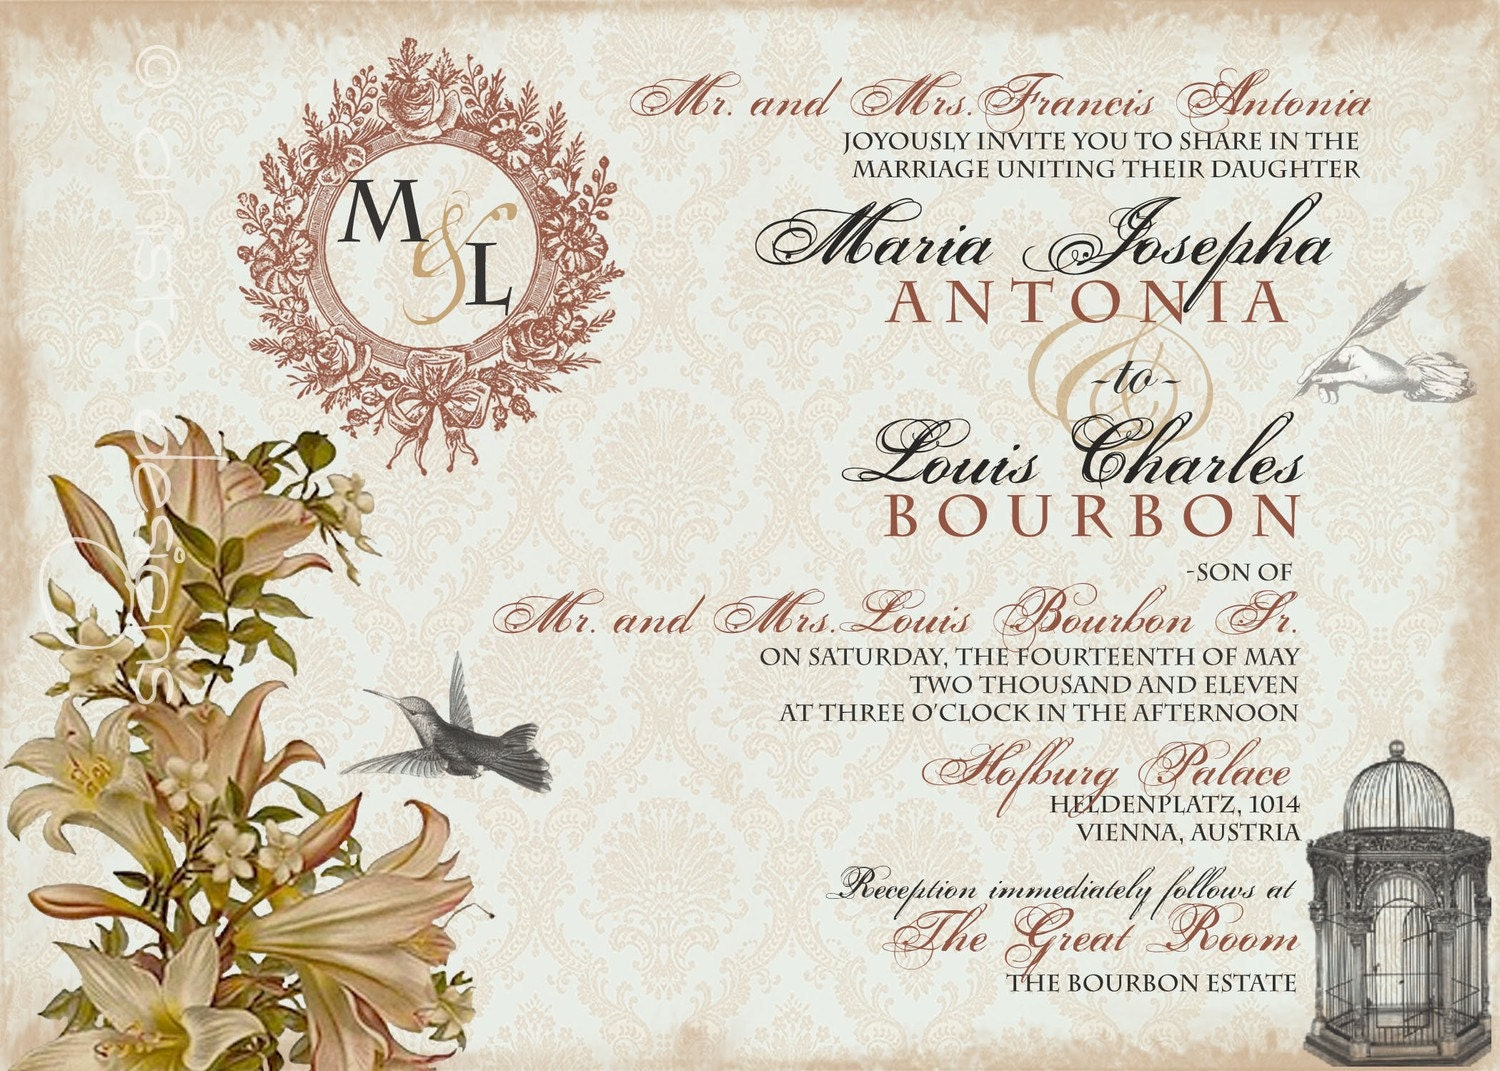 Free Samples Wedding Invitations: Vintage Wedding Invitation Sample Whimsical French Baroque